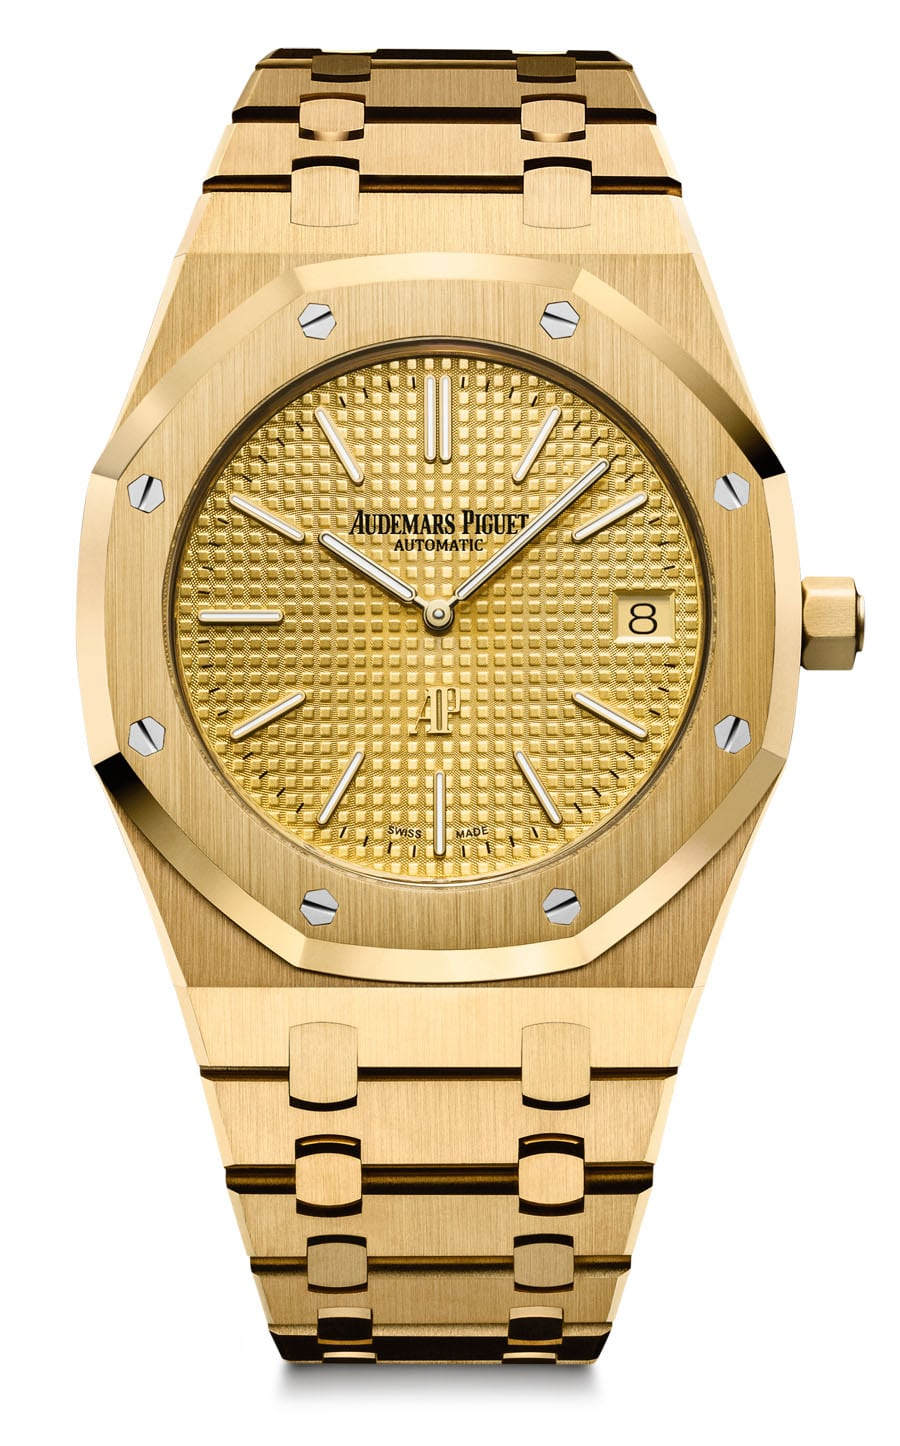 Audemars Piguet: Royal Oak Extraflach in Gelbgold mit goldfarbenem Zifferblatt